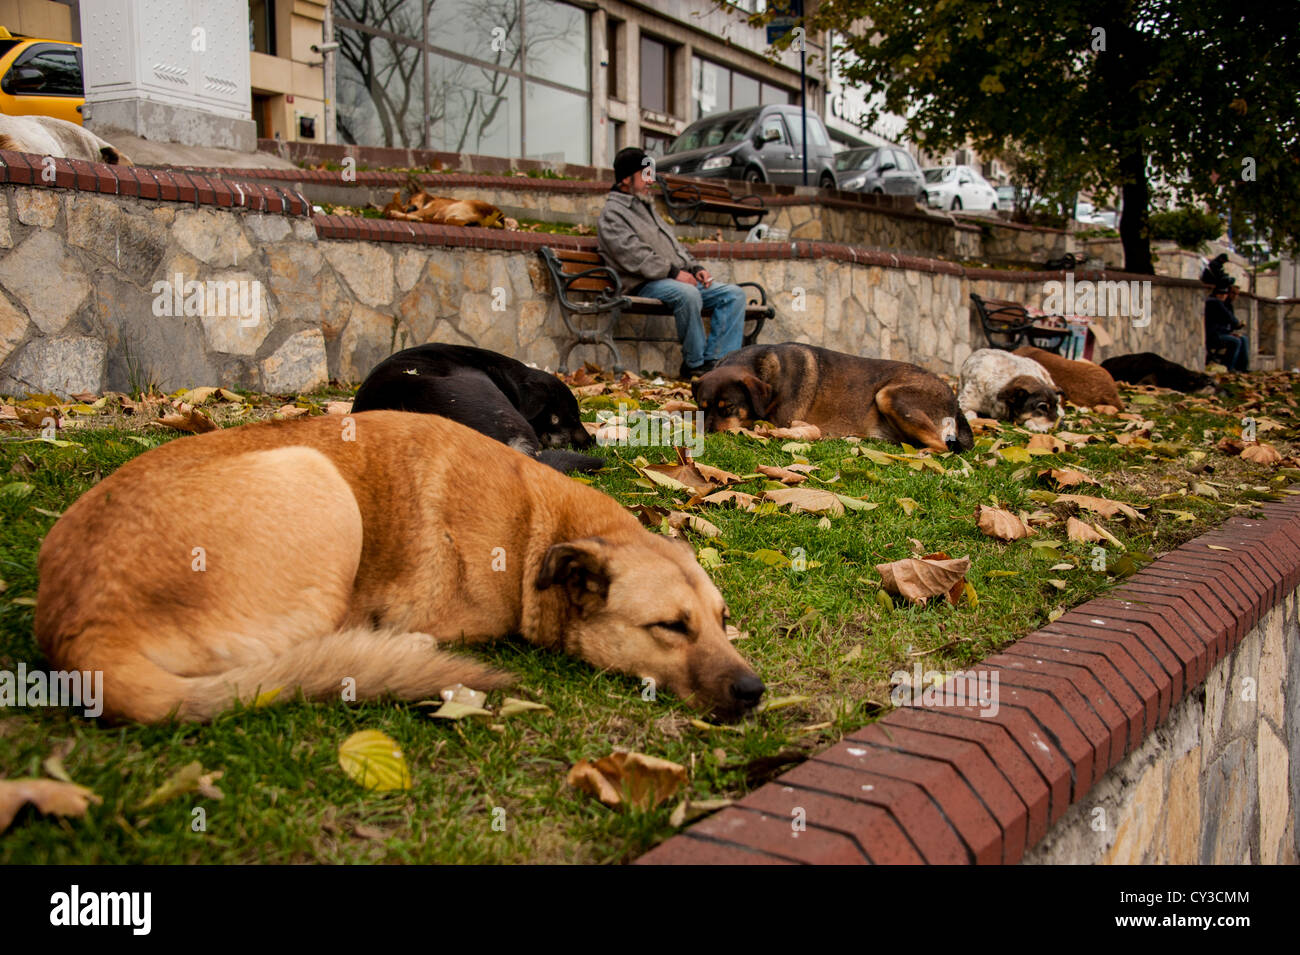 Homeless dogs in Istanbul, Turkey - Stock Image